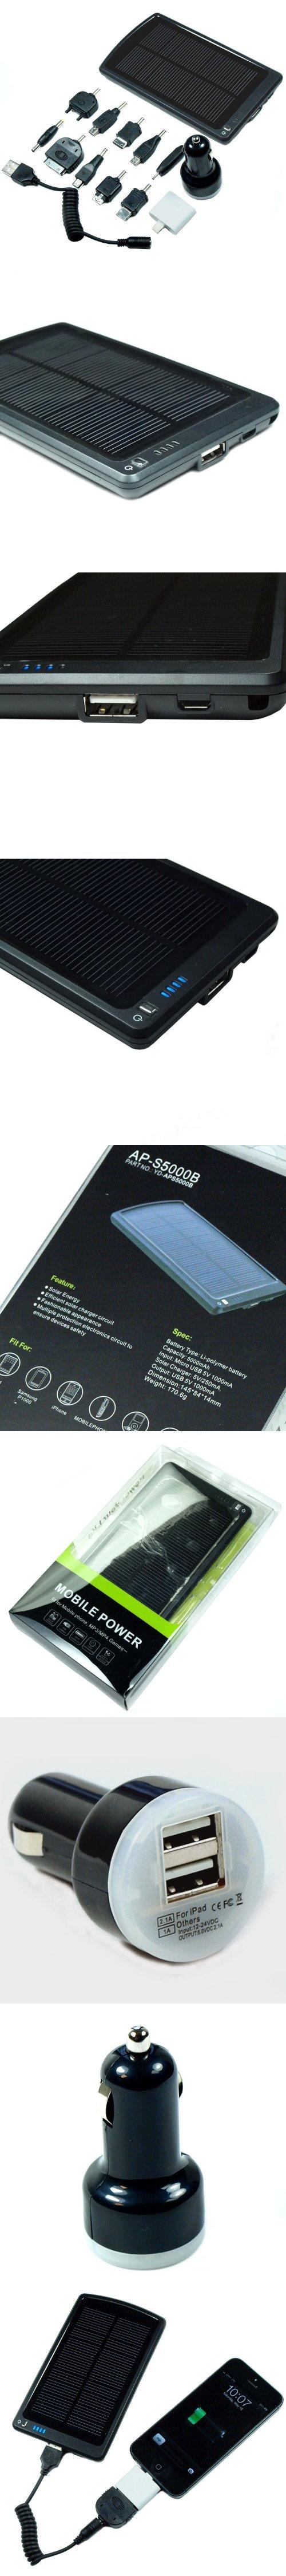 New Portable Usb Solar Charger Backup Battery W 8 Pin Converter For Iphone Circuit 5 One